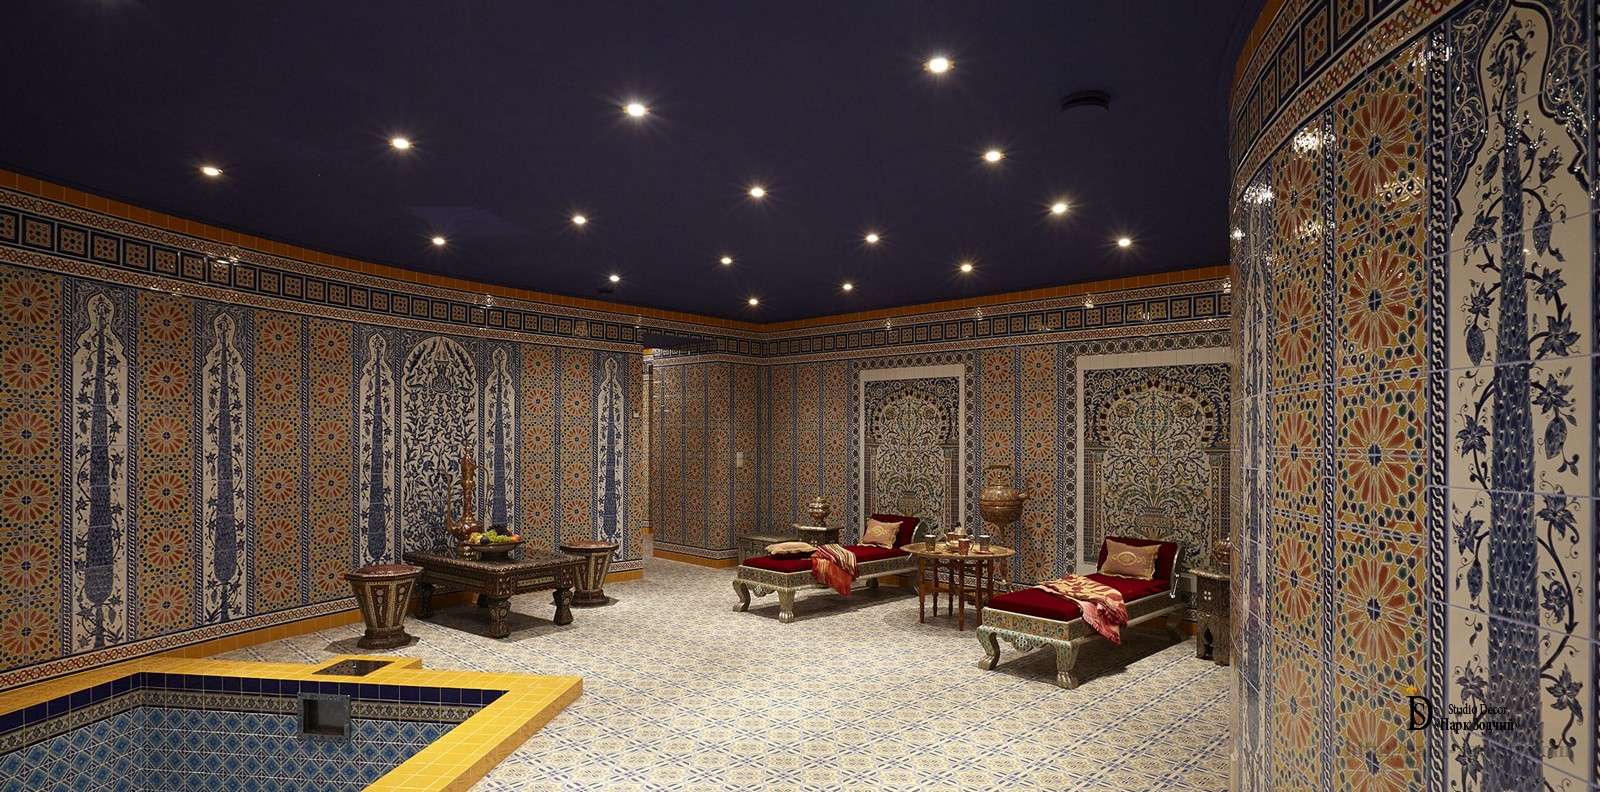 Richly decorated interior of the Hammam